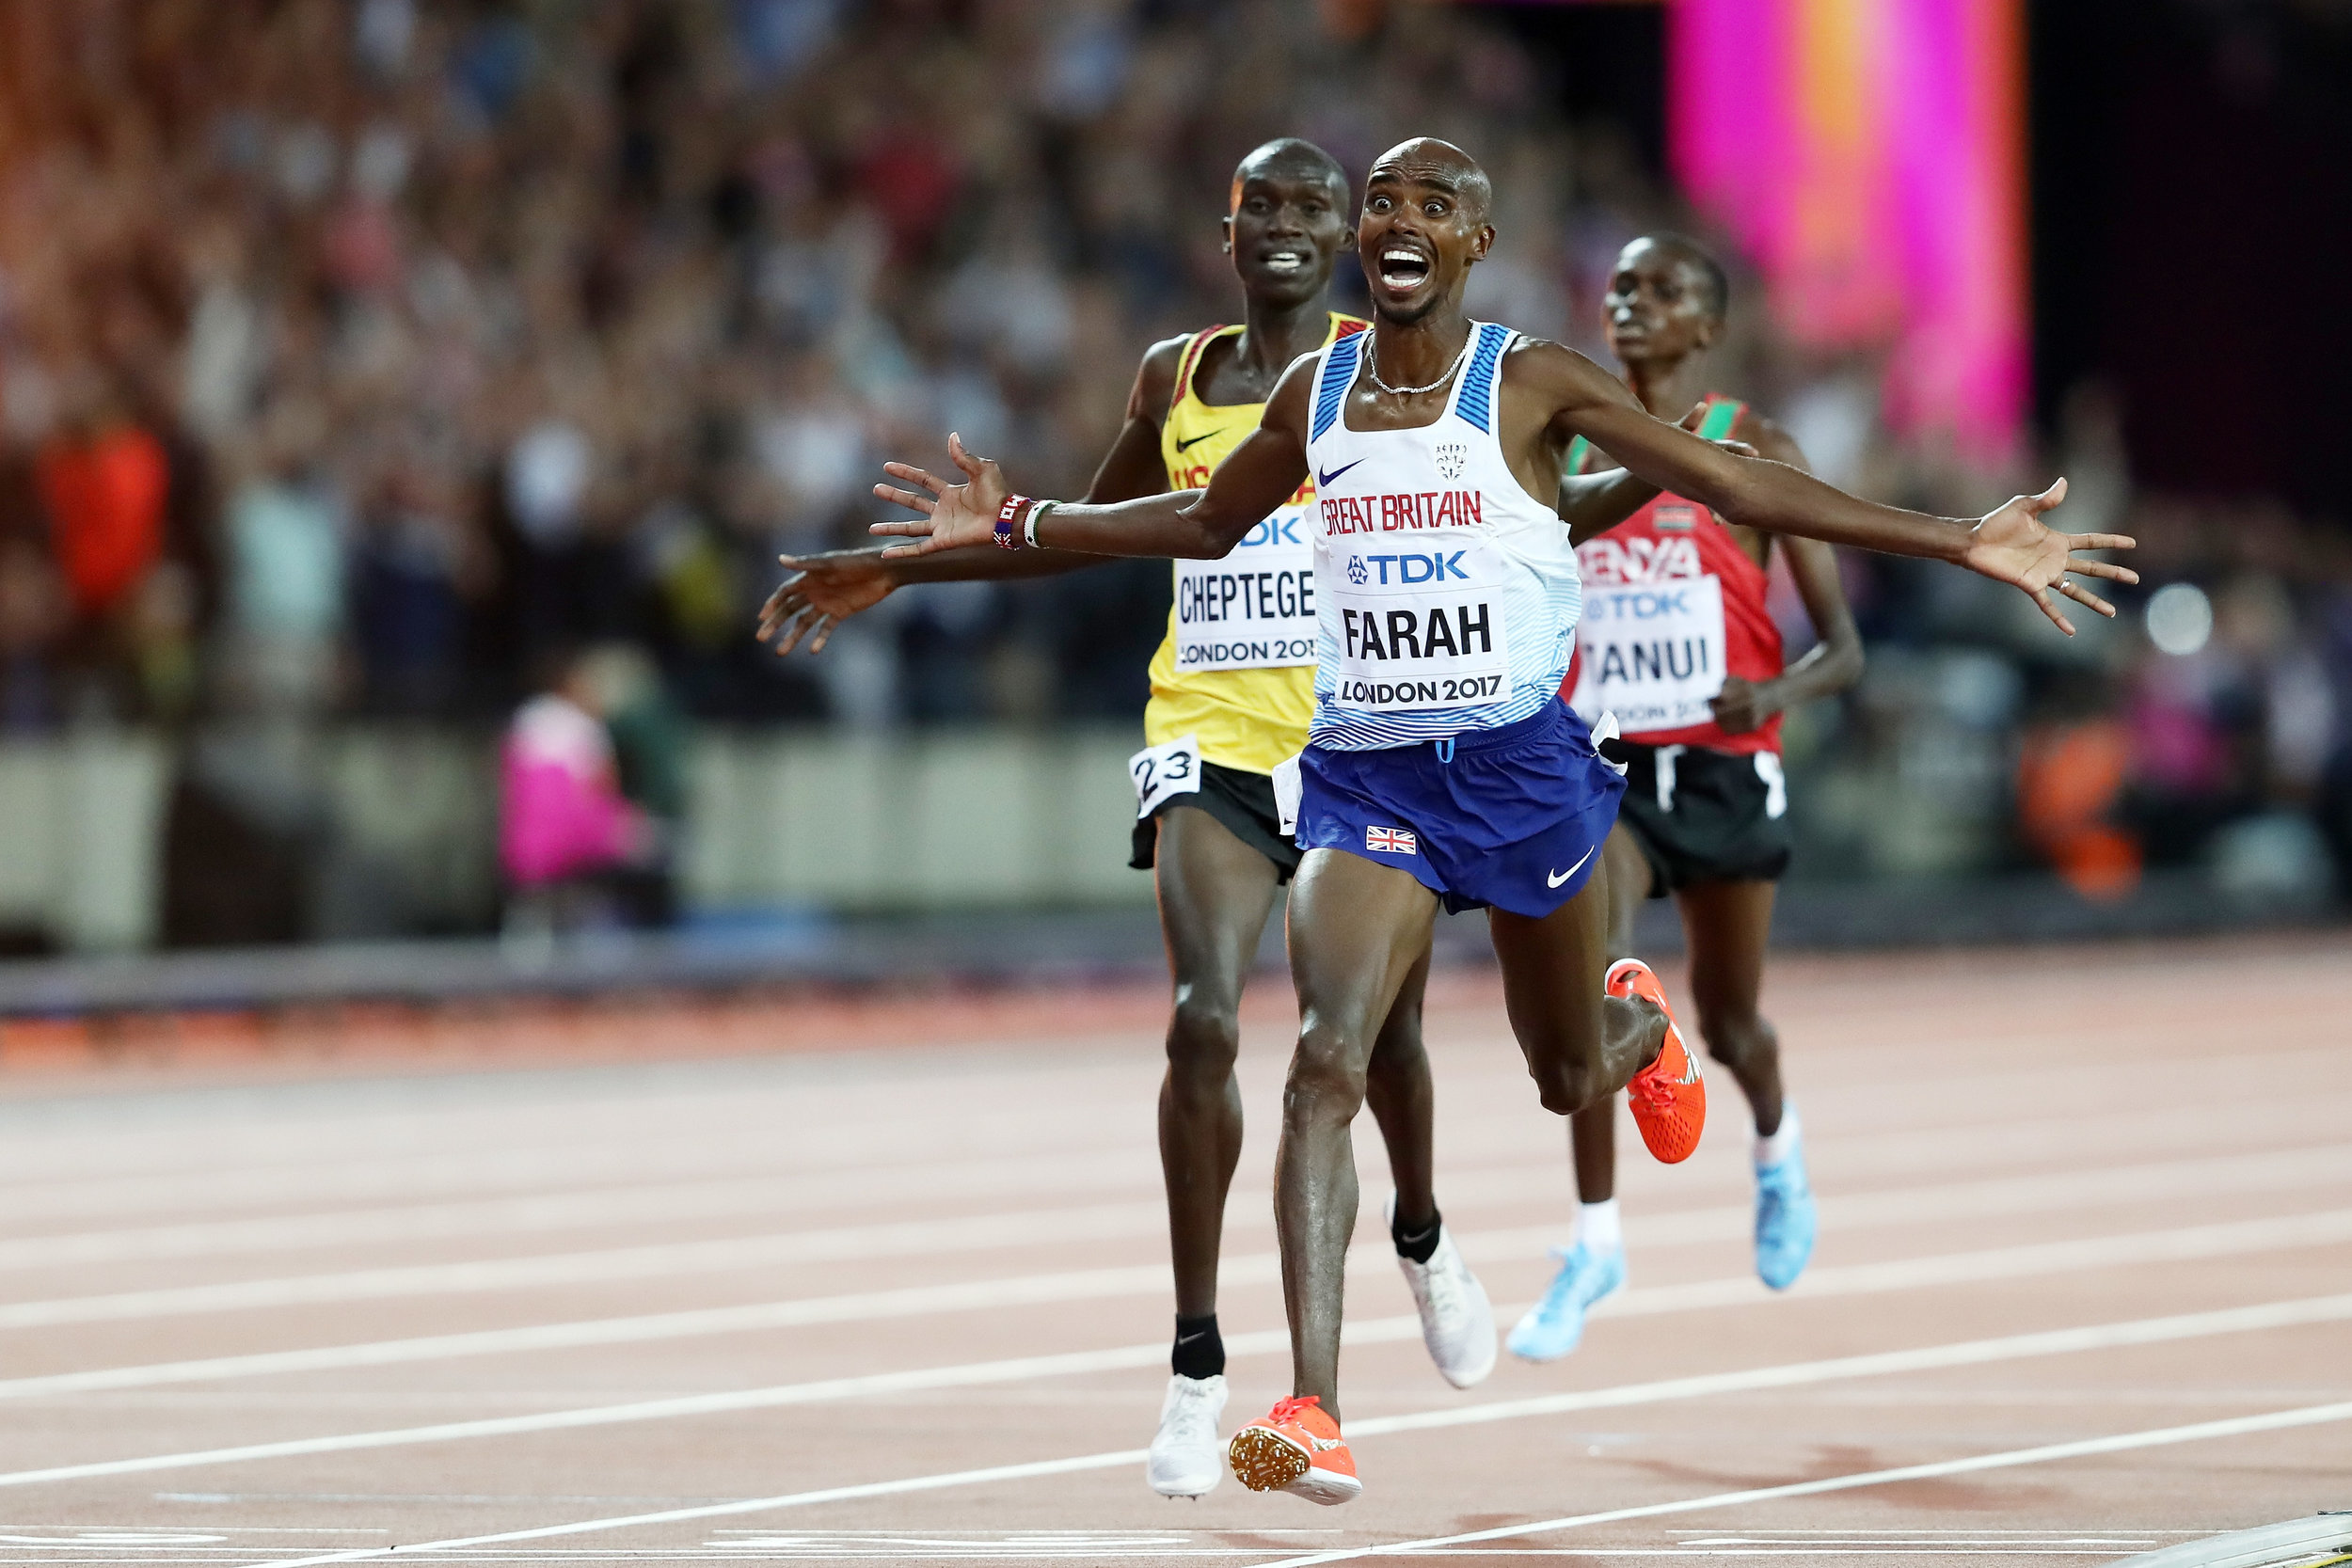 Britain's Mo Farah at the finish line of the men's 10k // Getty Images for IAAF